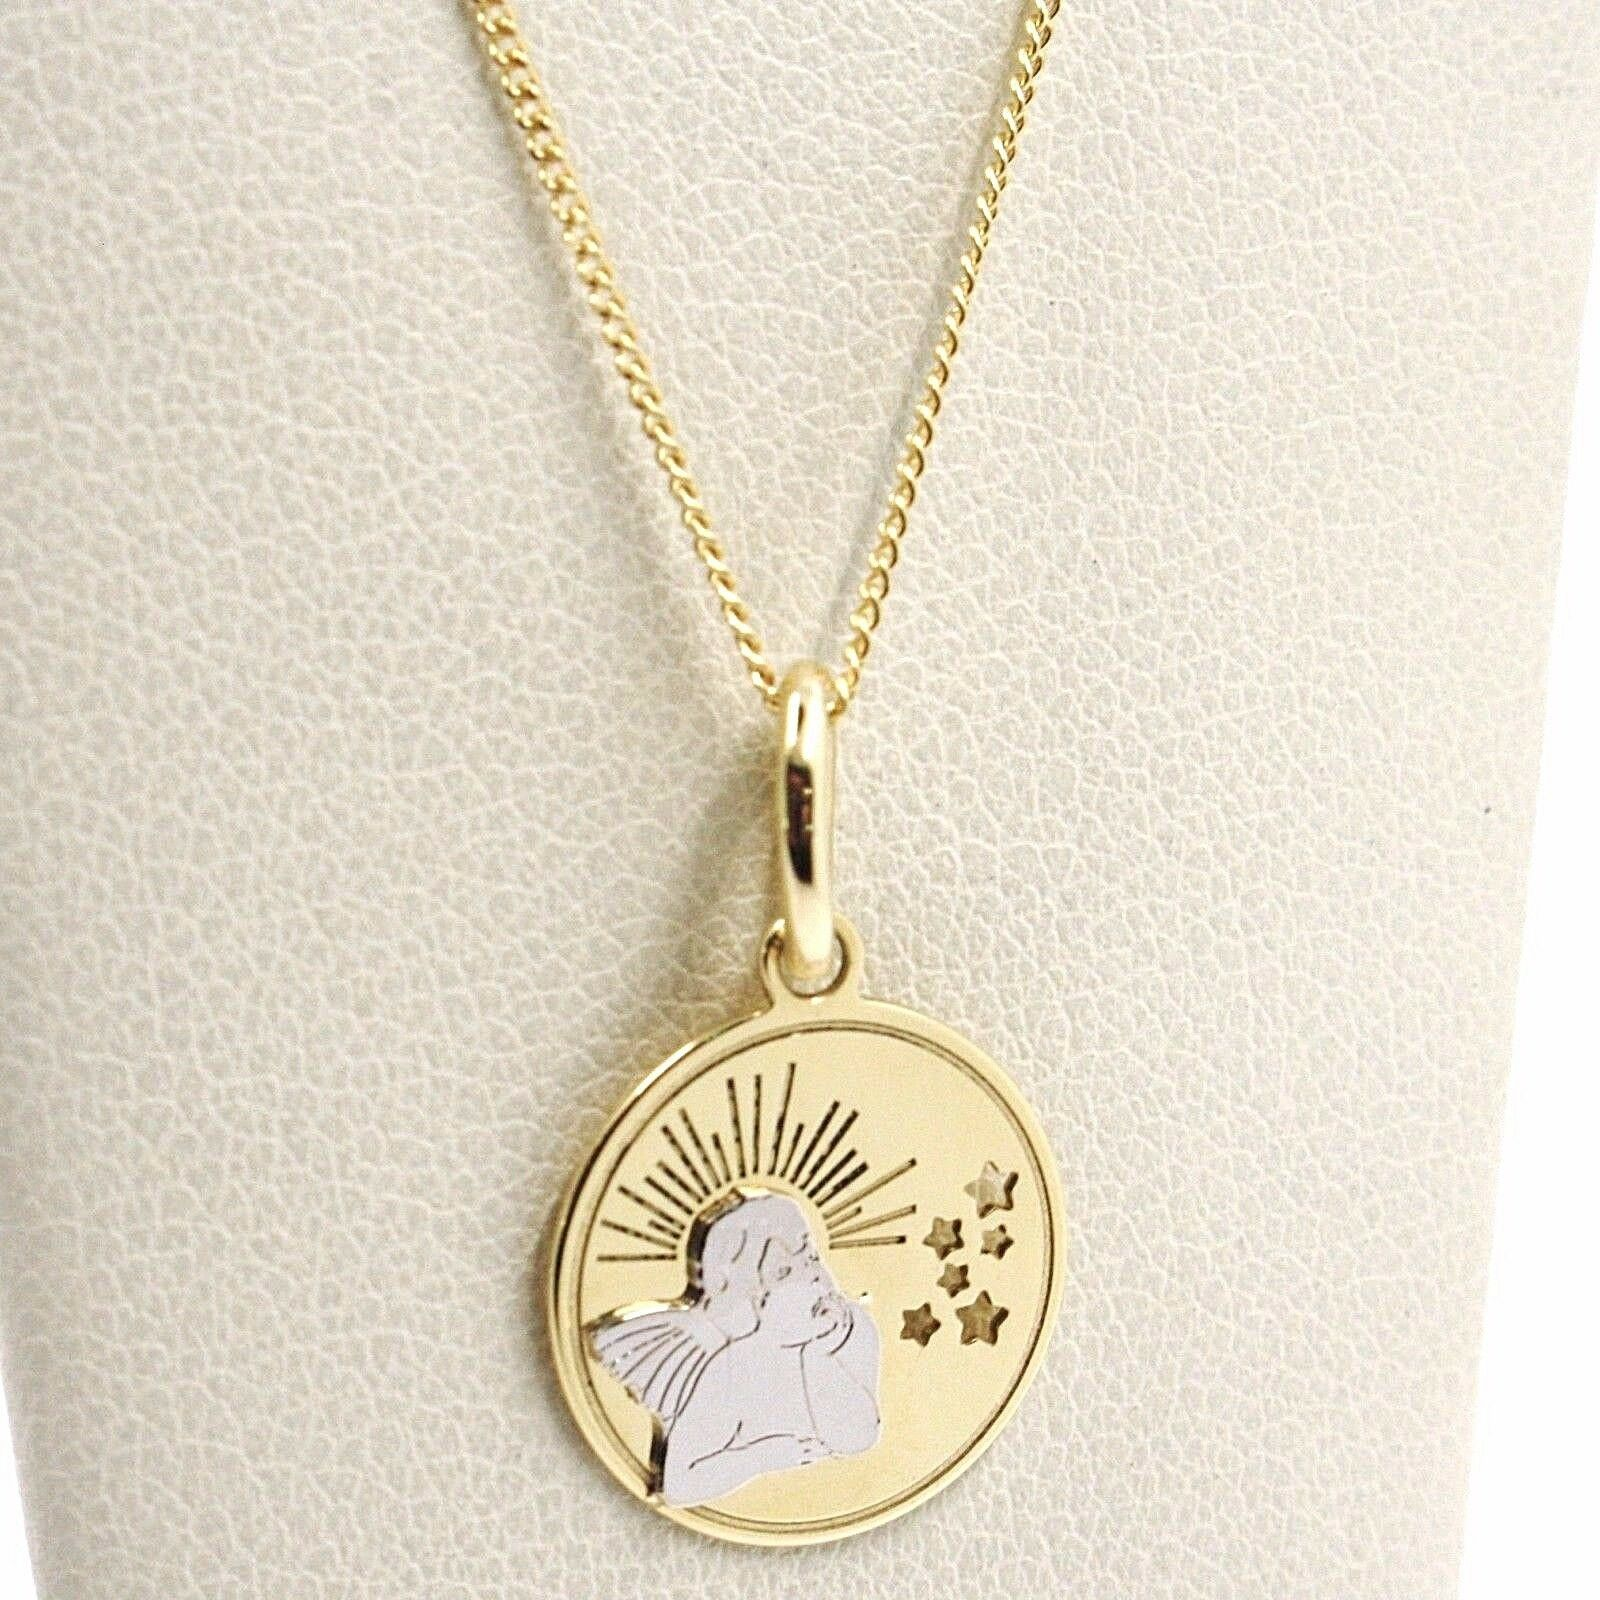 White Yellow Gold Necklace 18k, Chain Mini grumette, Medal Angel, Stars